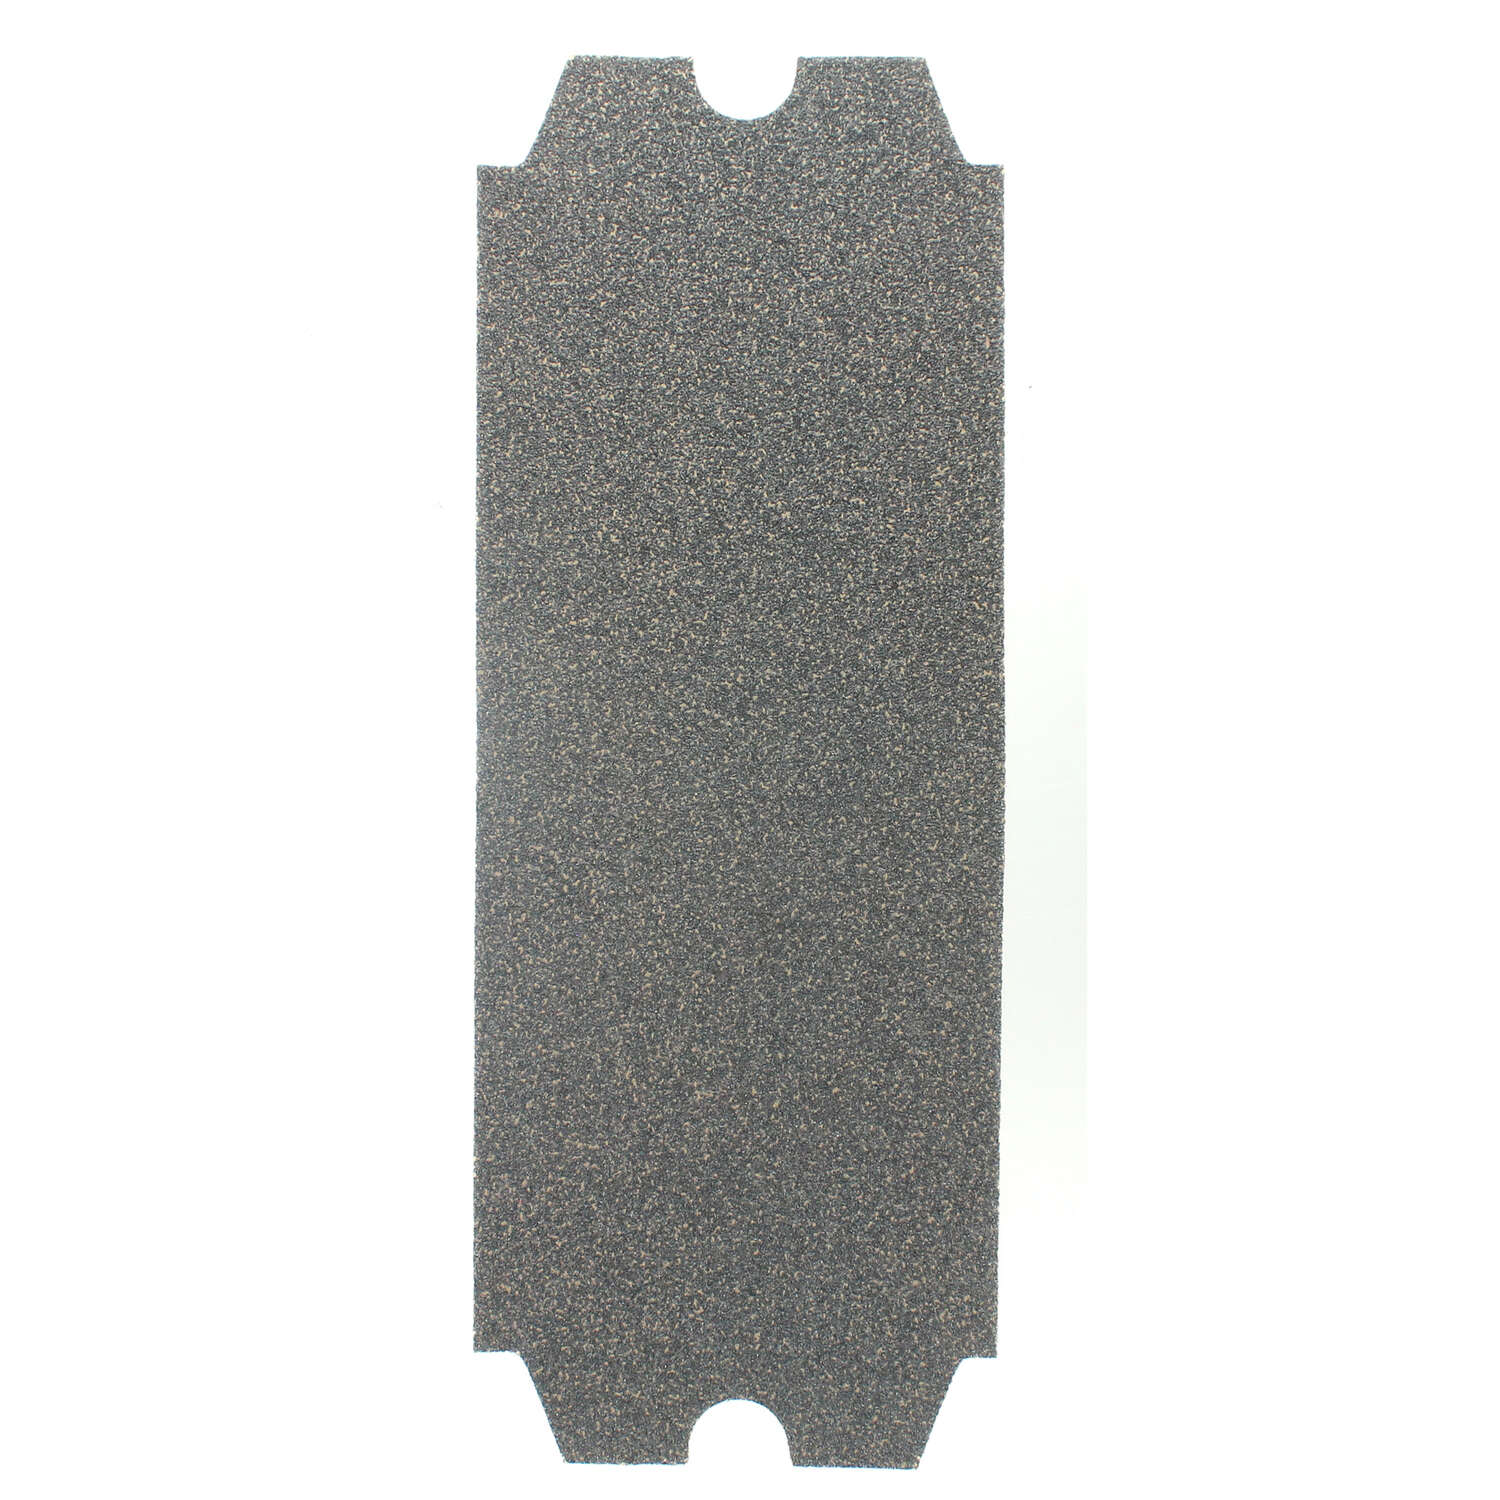 Gator  11-1/4 in. L x 4-1/4 in. W 80 Grit Medium  Silicon Carbide  Drywall Sanding Sheet  1 pc.